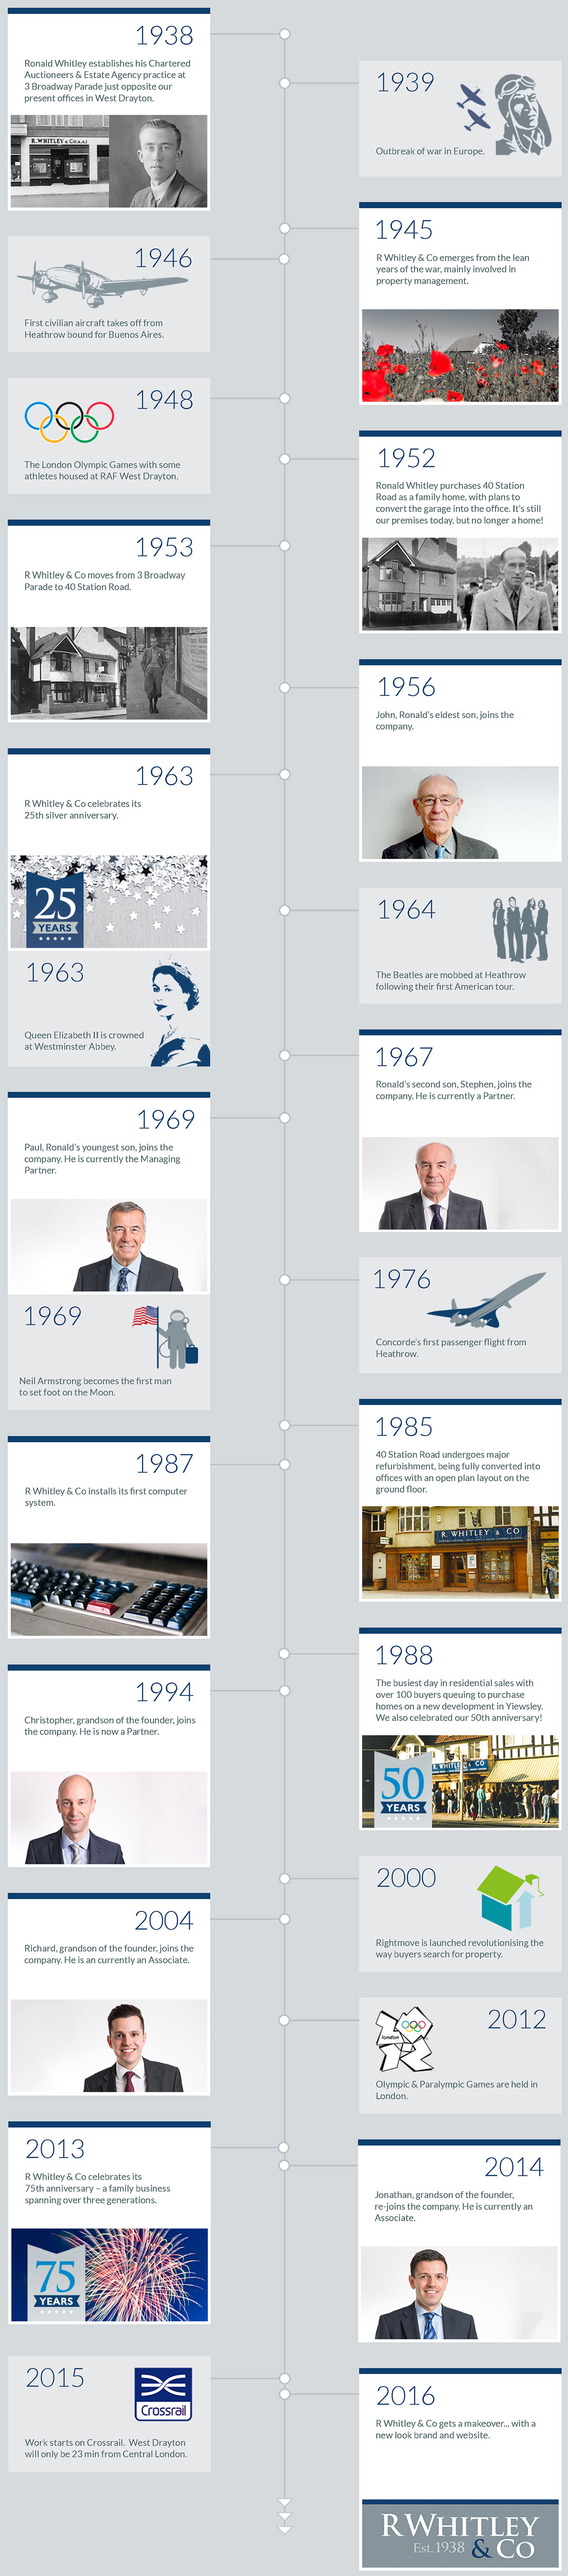 Timeline History of R Whitley and Co